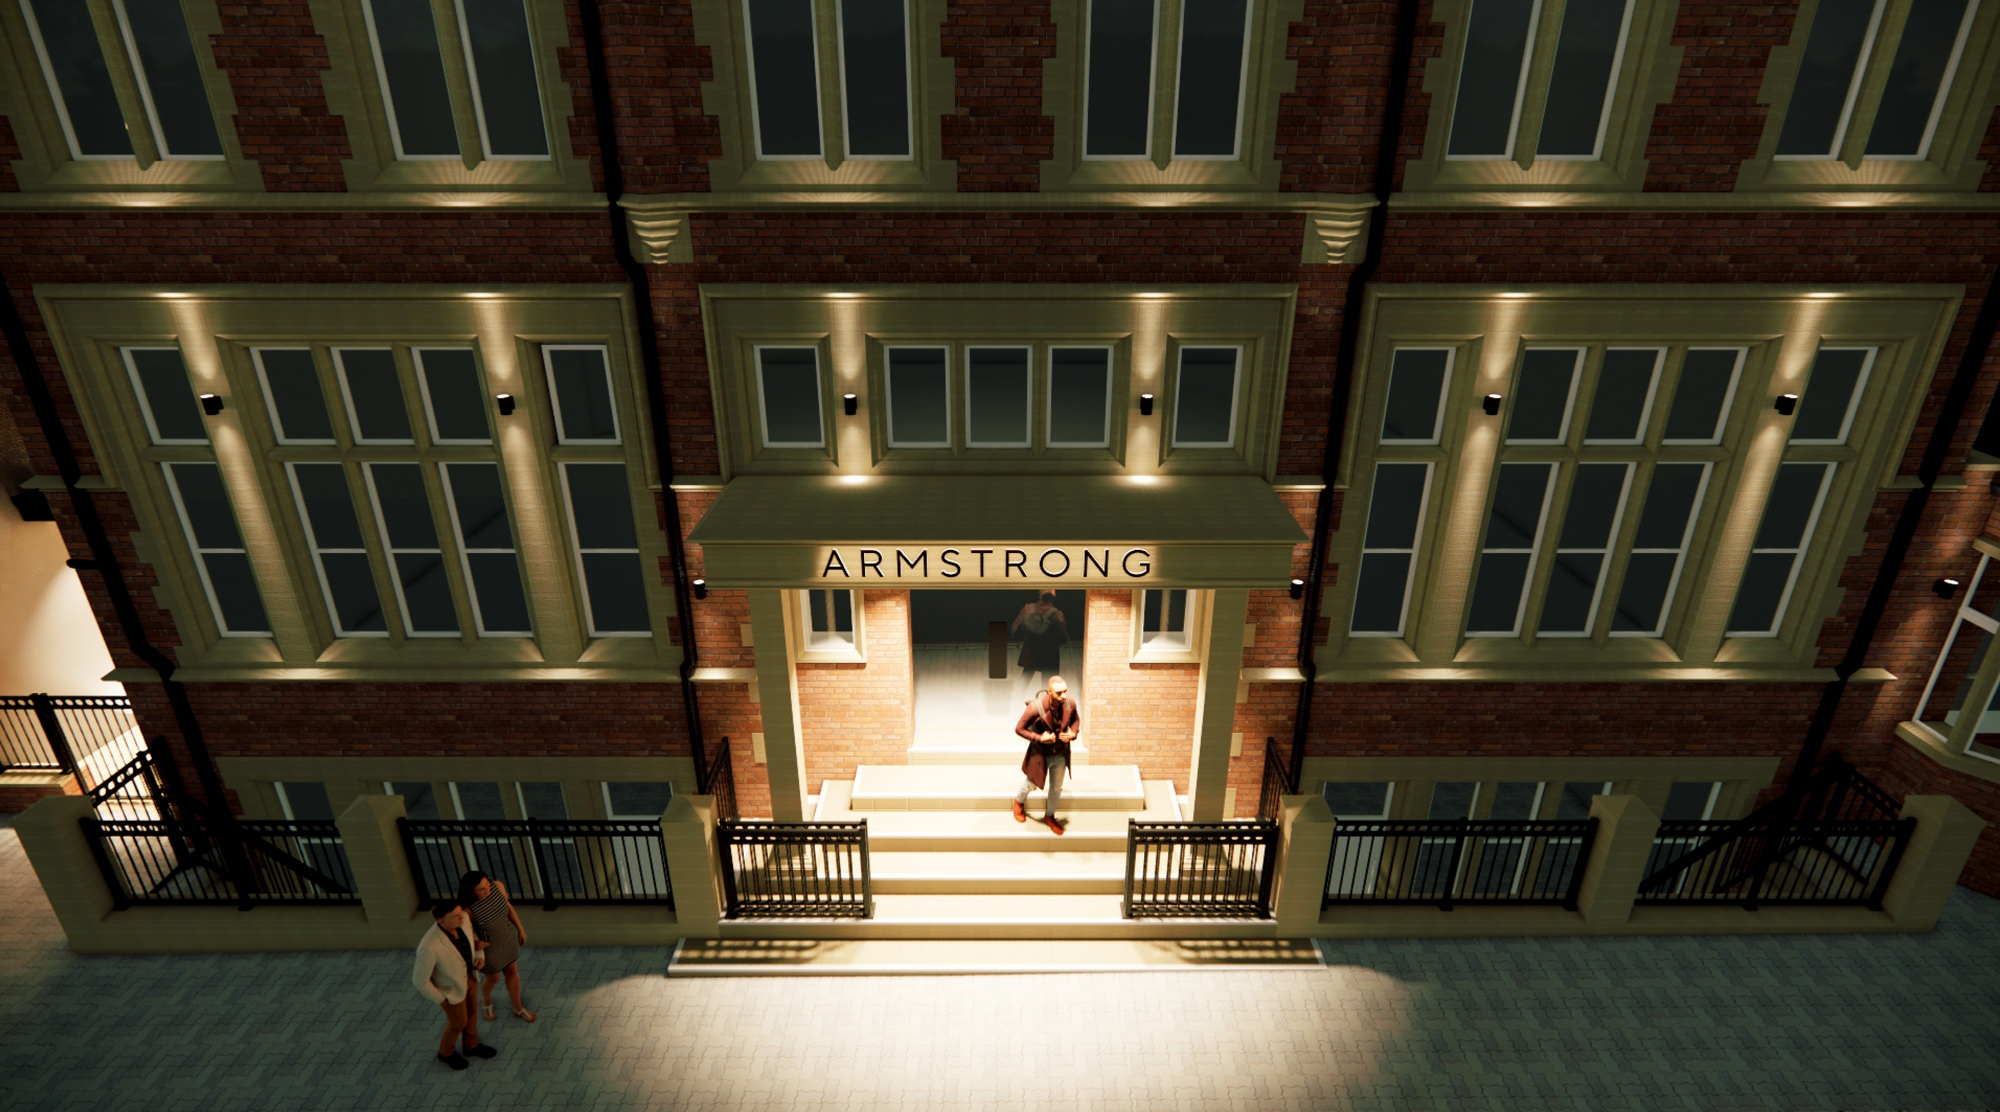 A mock-up of how the new Armstrong premises will look when works are complete